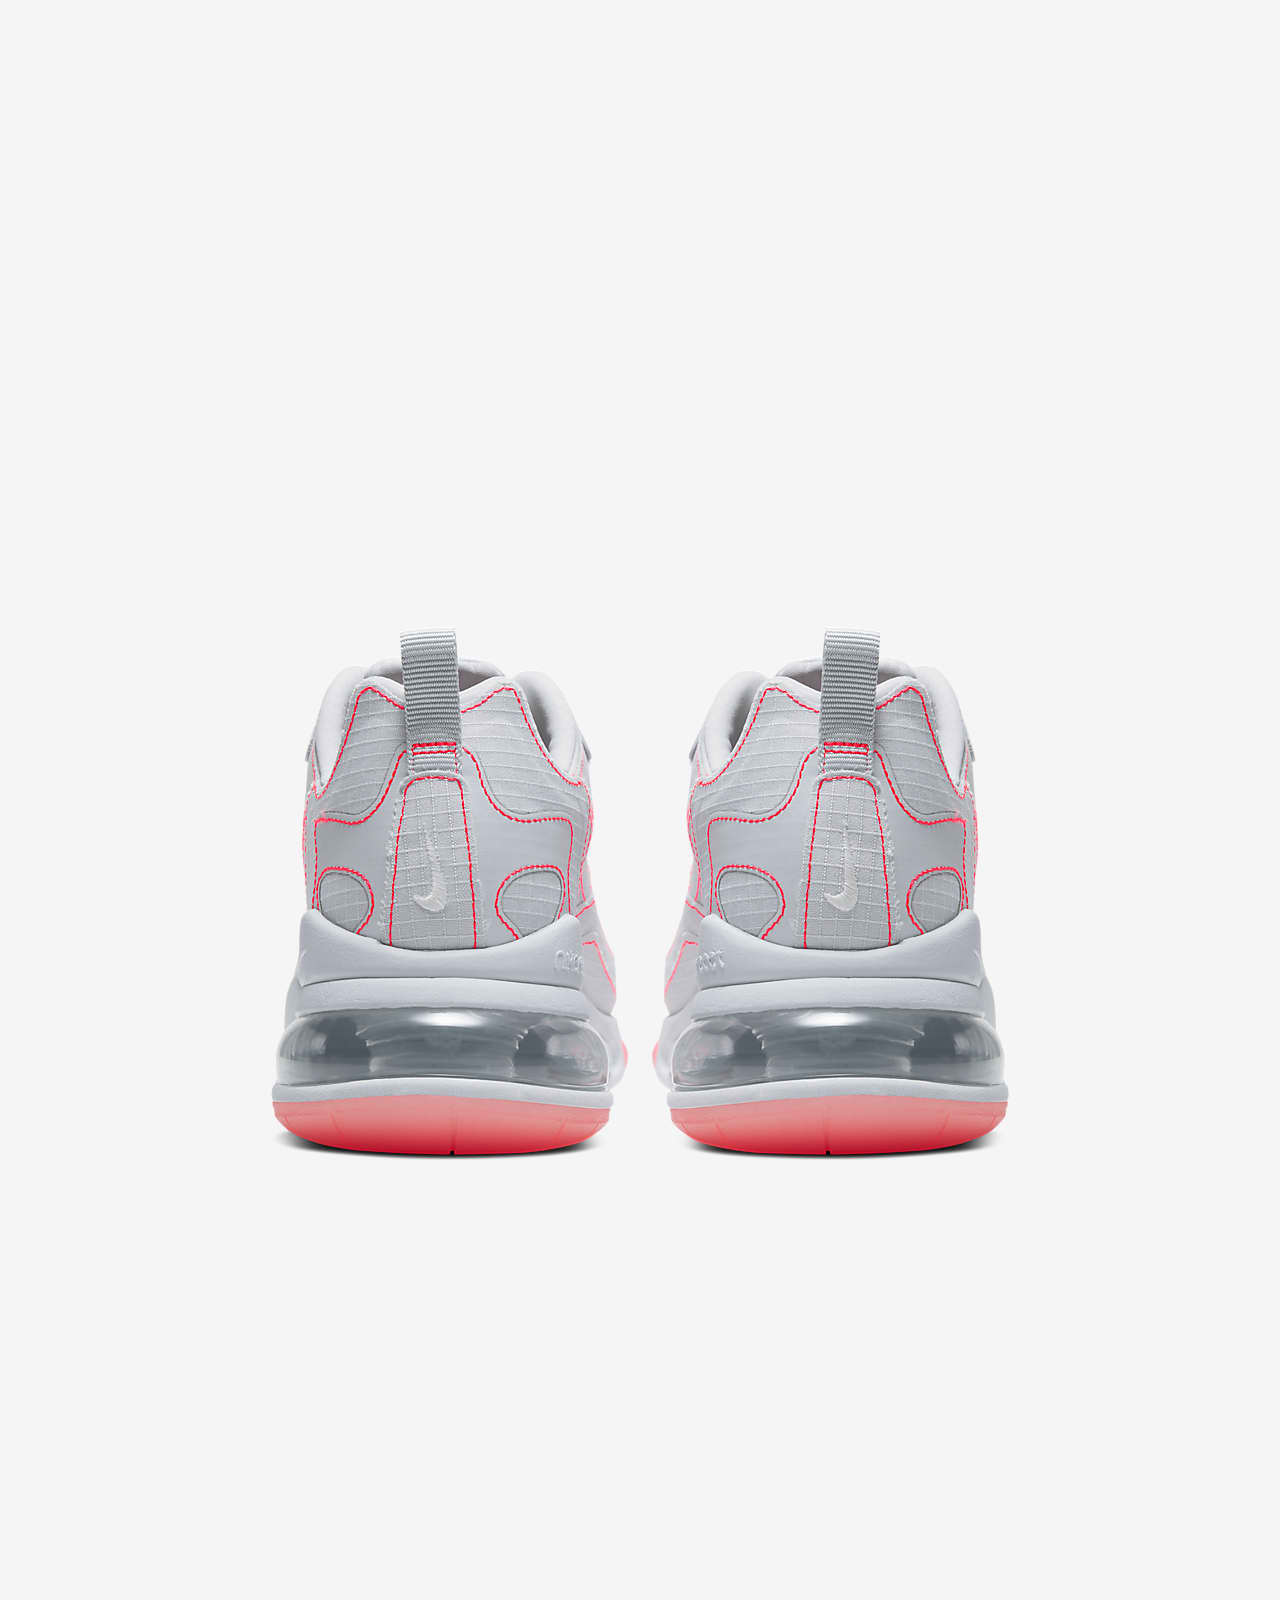 Nike Air Max 270 Special Edition Shoe